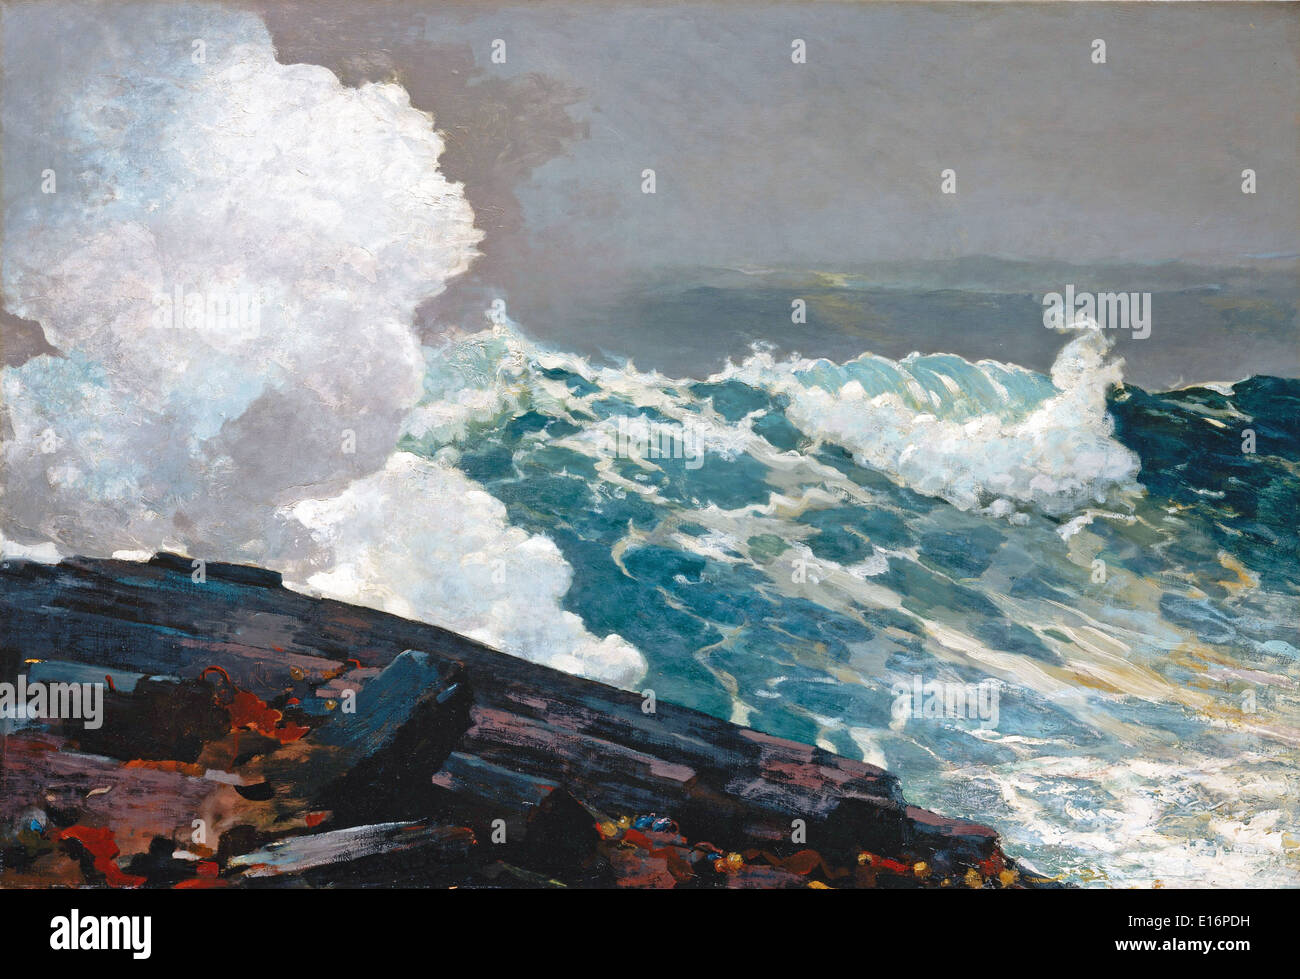 Northeaster by Winslow Homer, 1895 - Stock Image